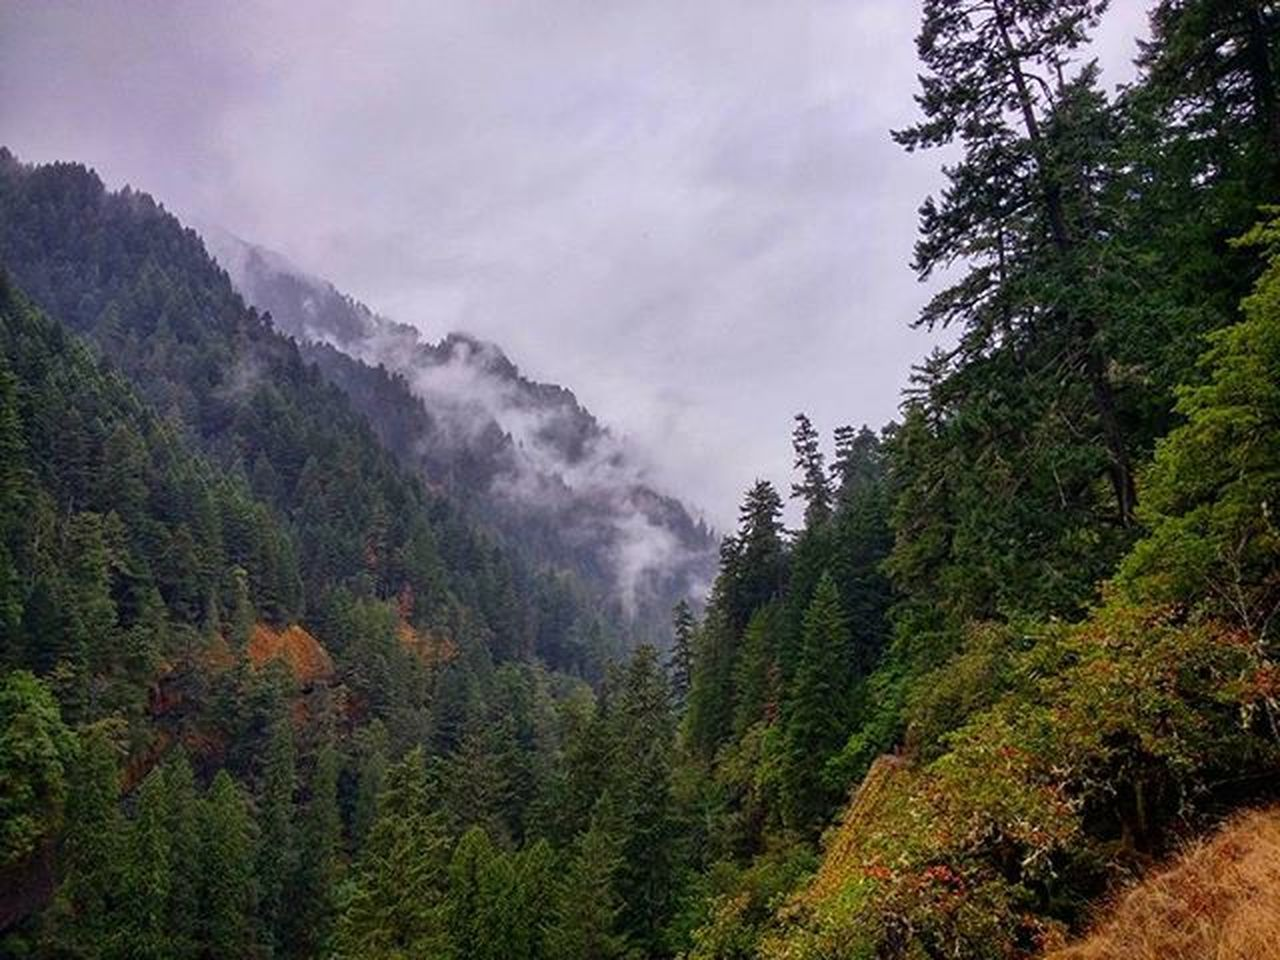 Lost in the Oregon mountains. Oregon Oregonnw Mountains Pacificnorthwest PNW Pnwcollective Northwest Explore Nature Forest Forest_masters Trees Pine Pineforest Clouds Misty Raining